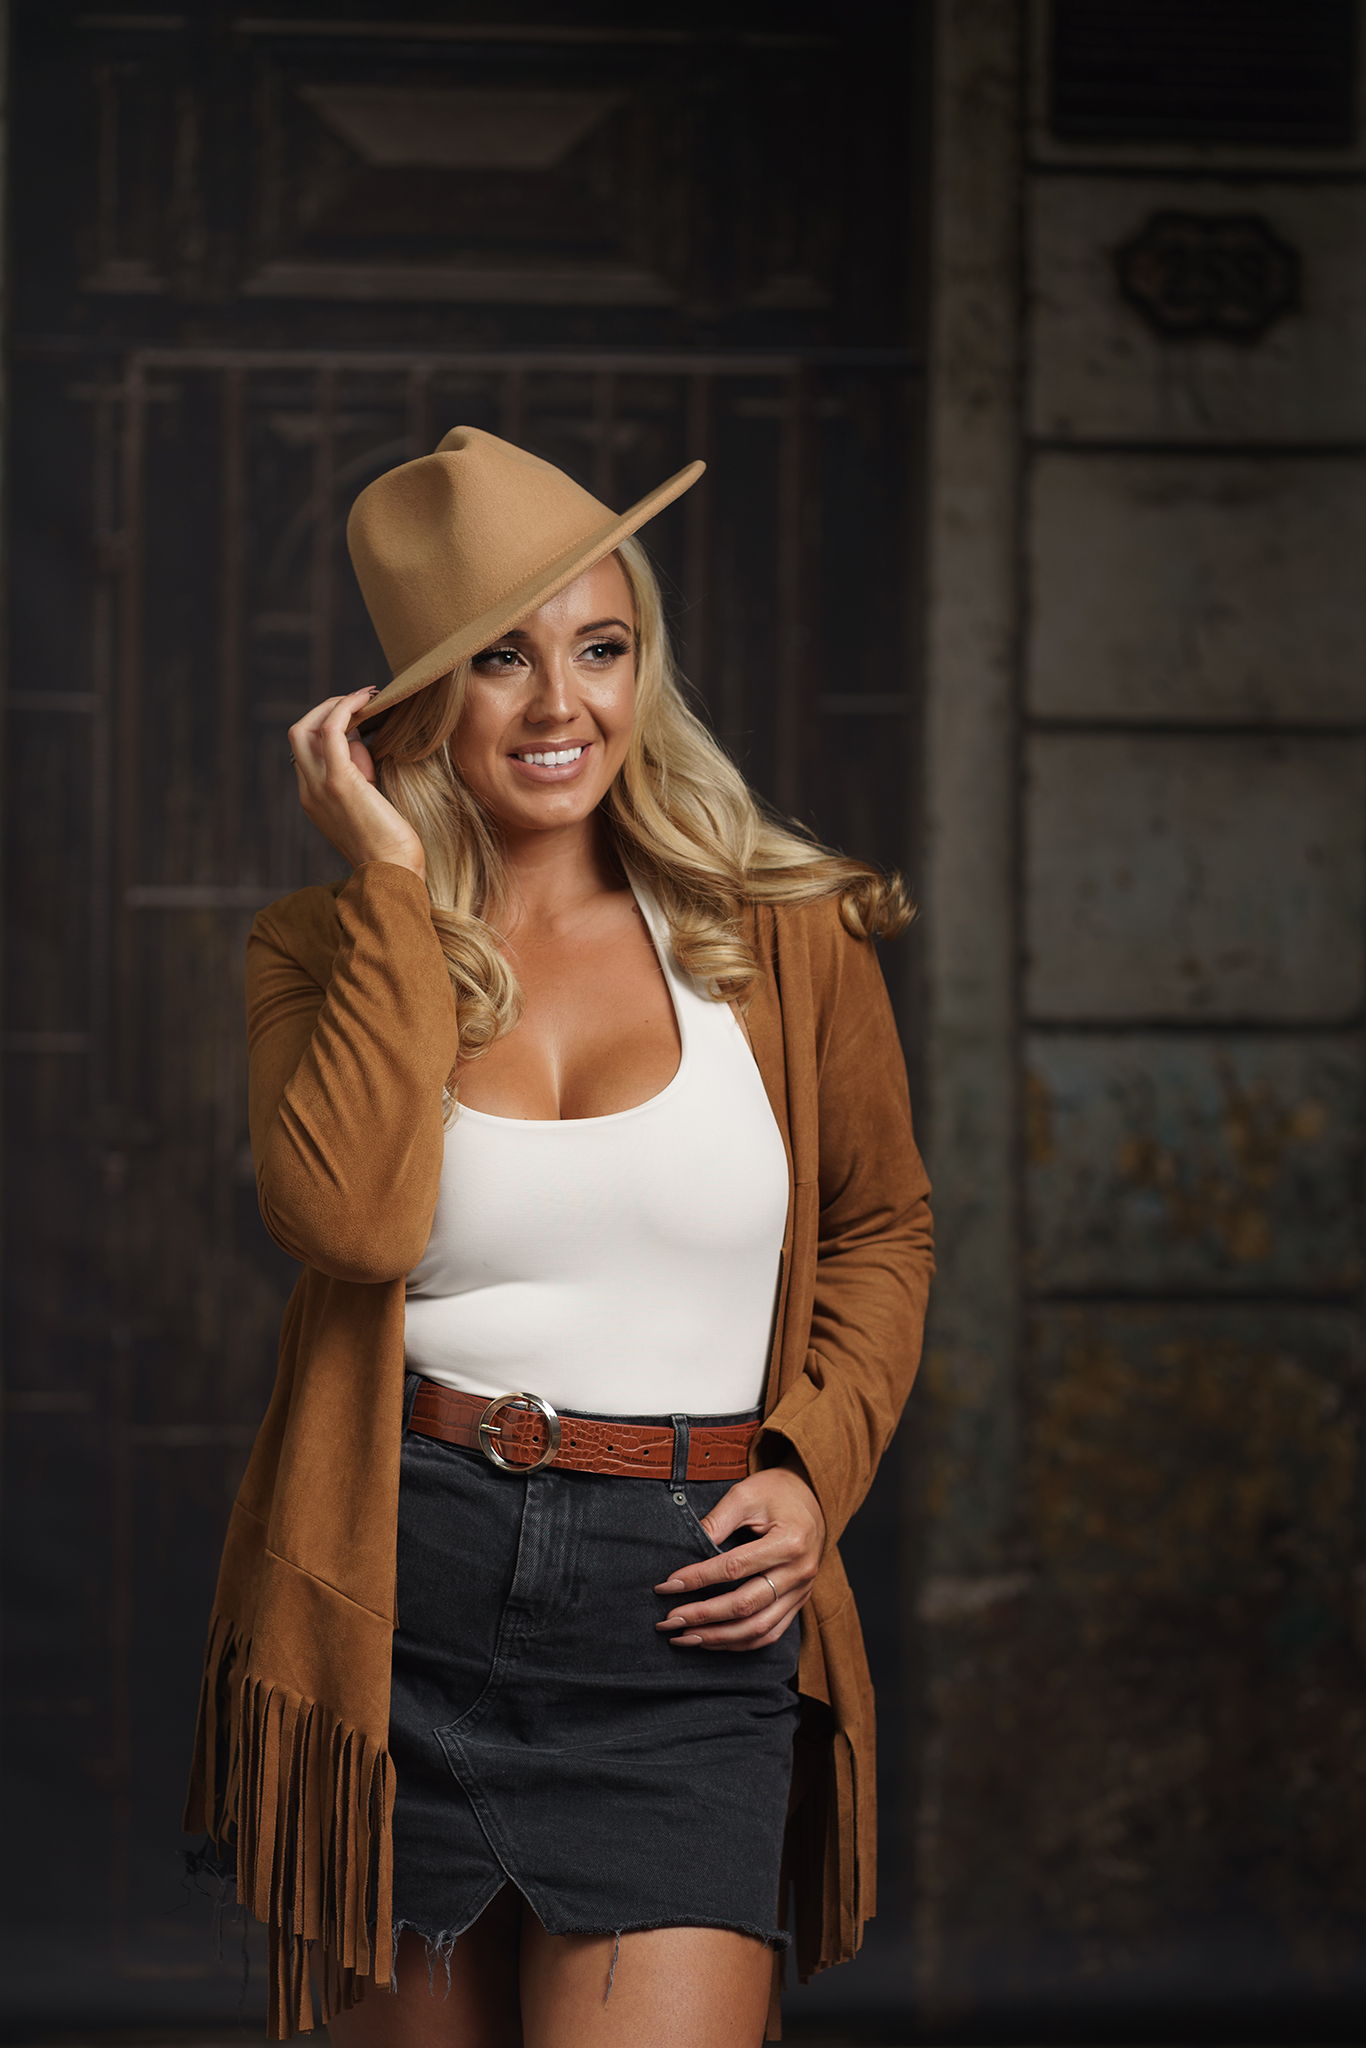 blonde in cowboy hat in studio shoot by Portrait photographer Preston